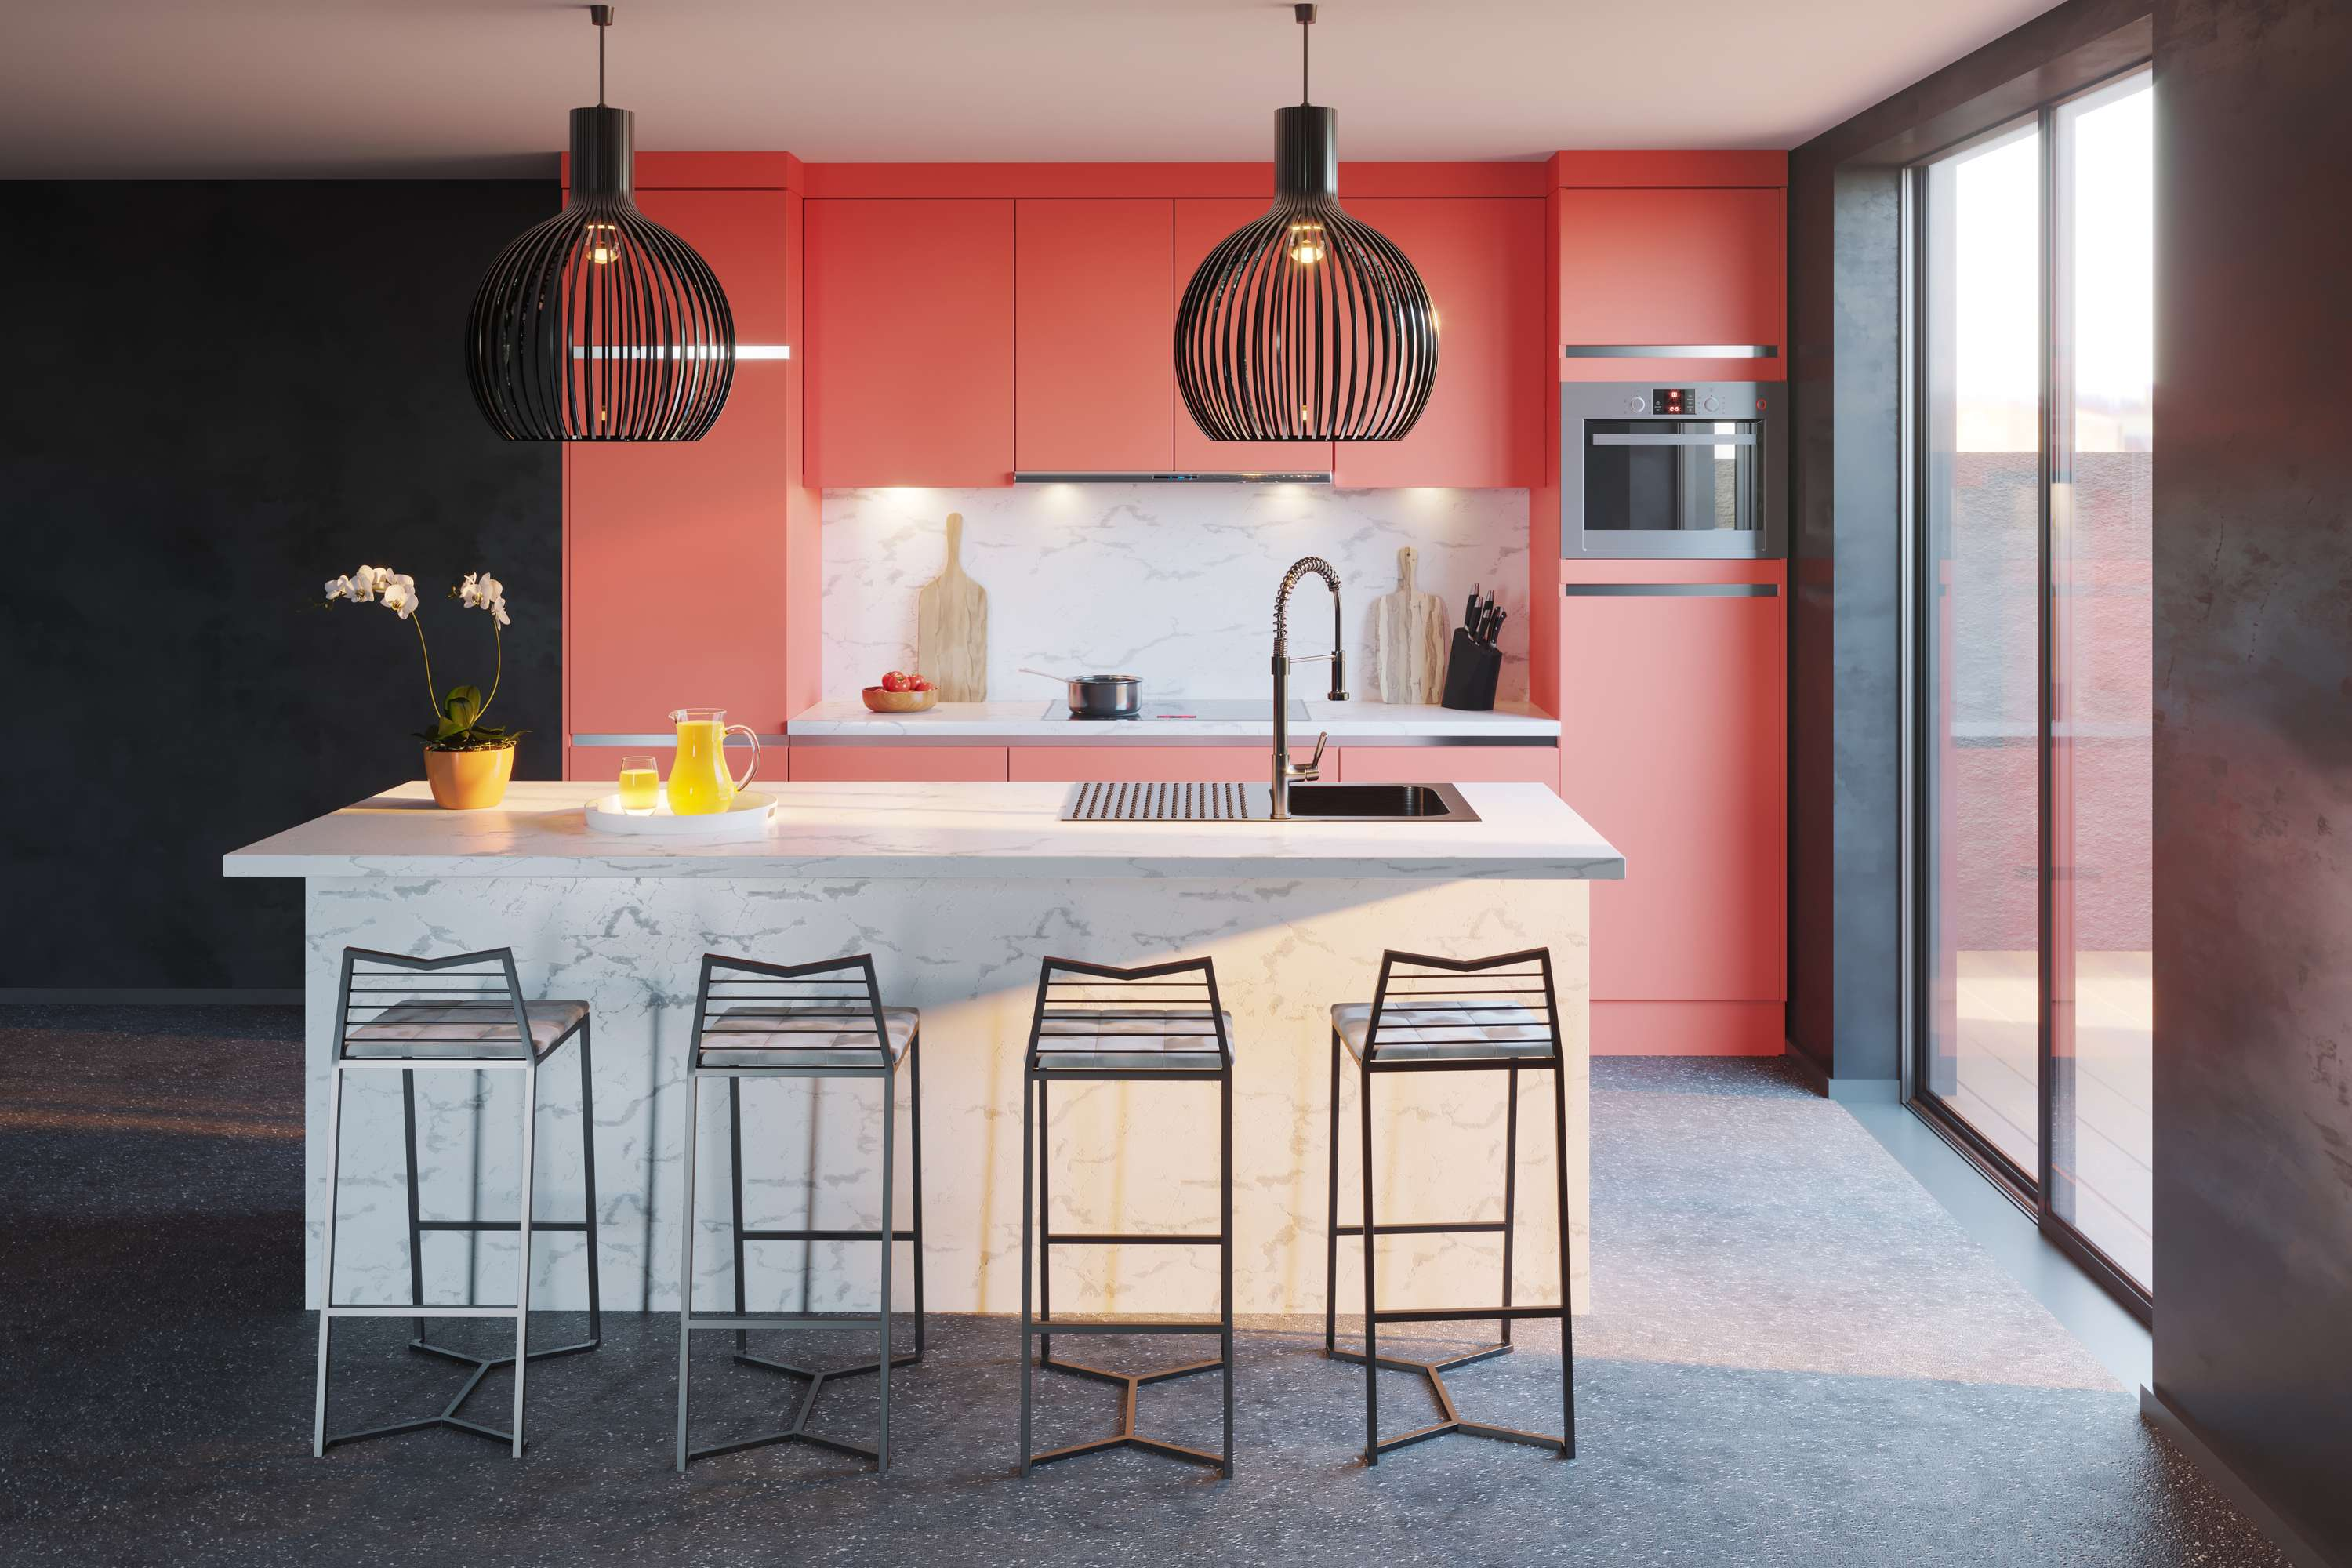 Interior Kitchen - Living Coral   The Dots